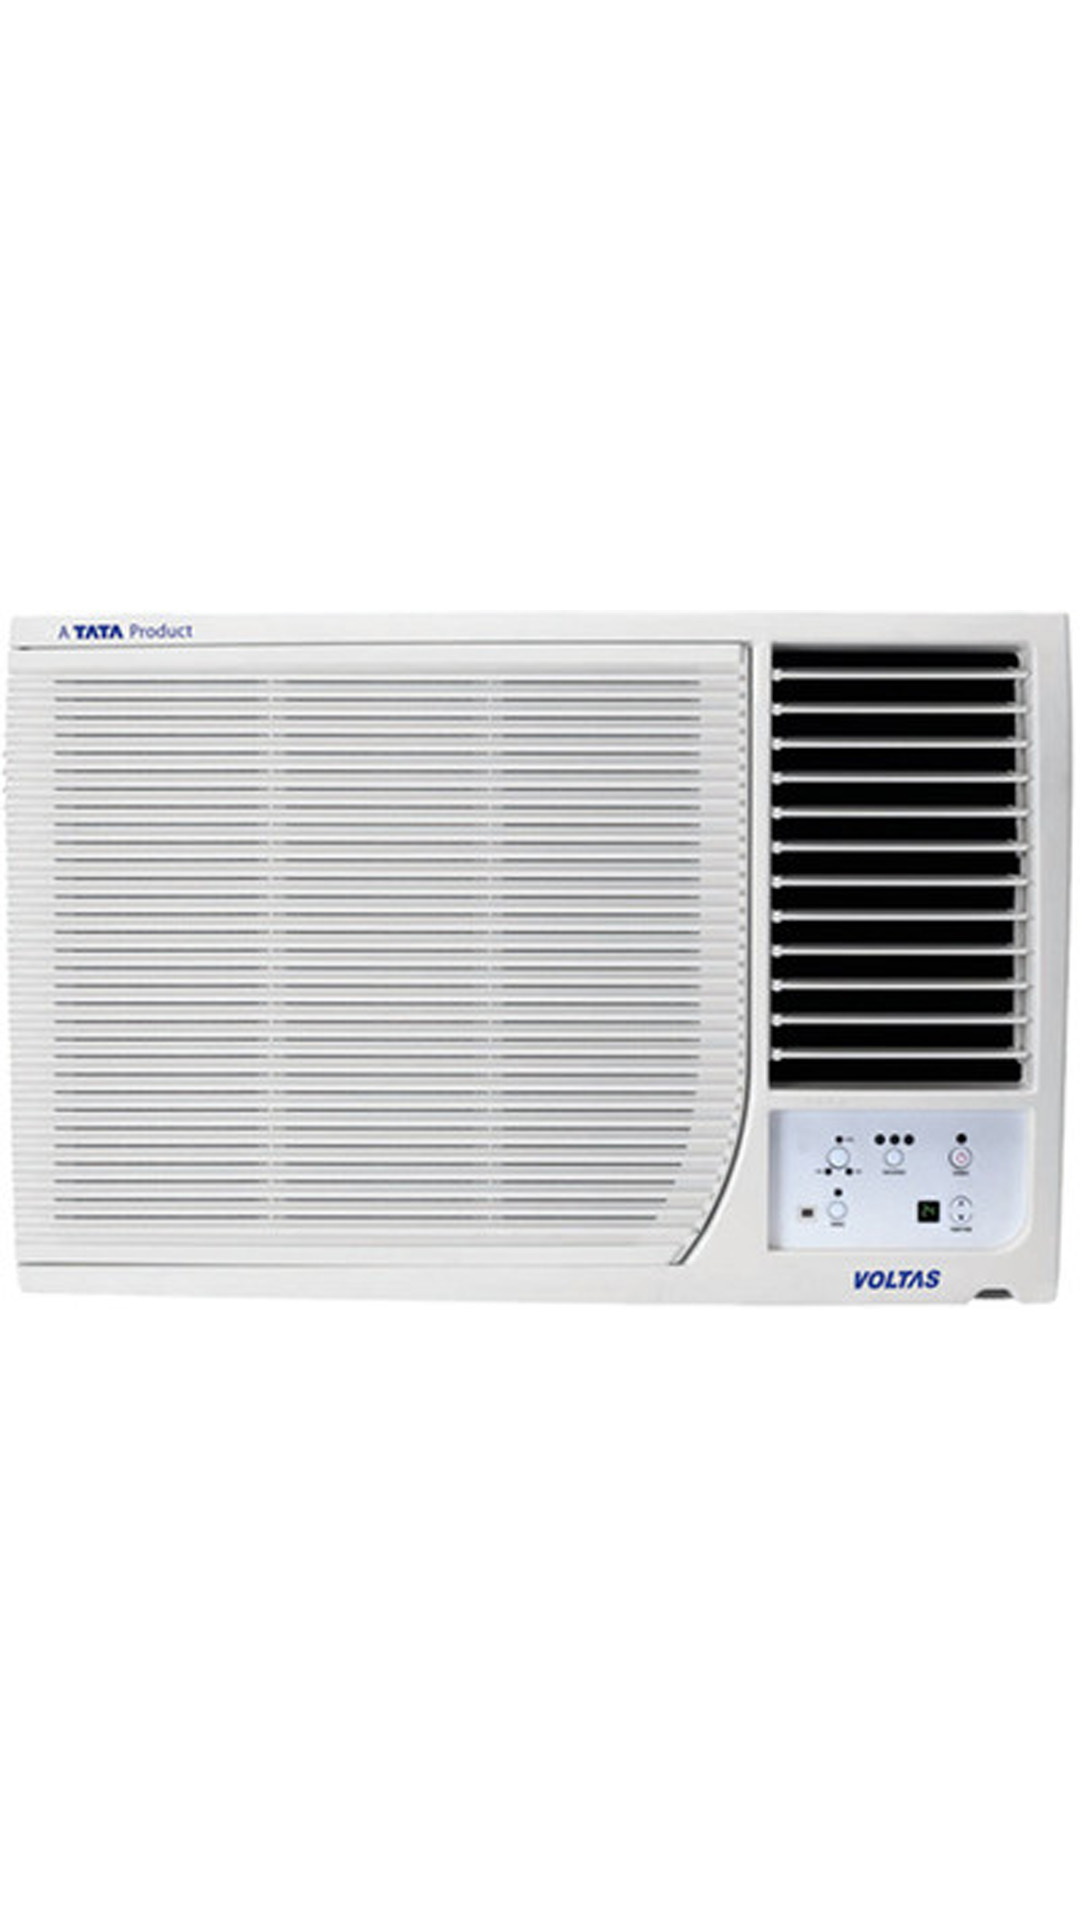 Voltas 122LY 1 Ton 2 Star Window AC